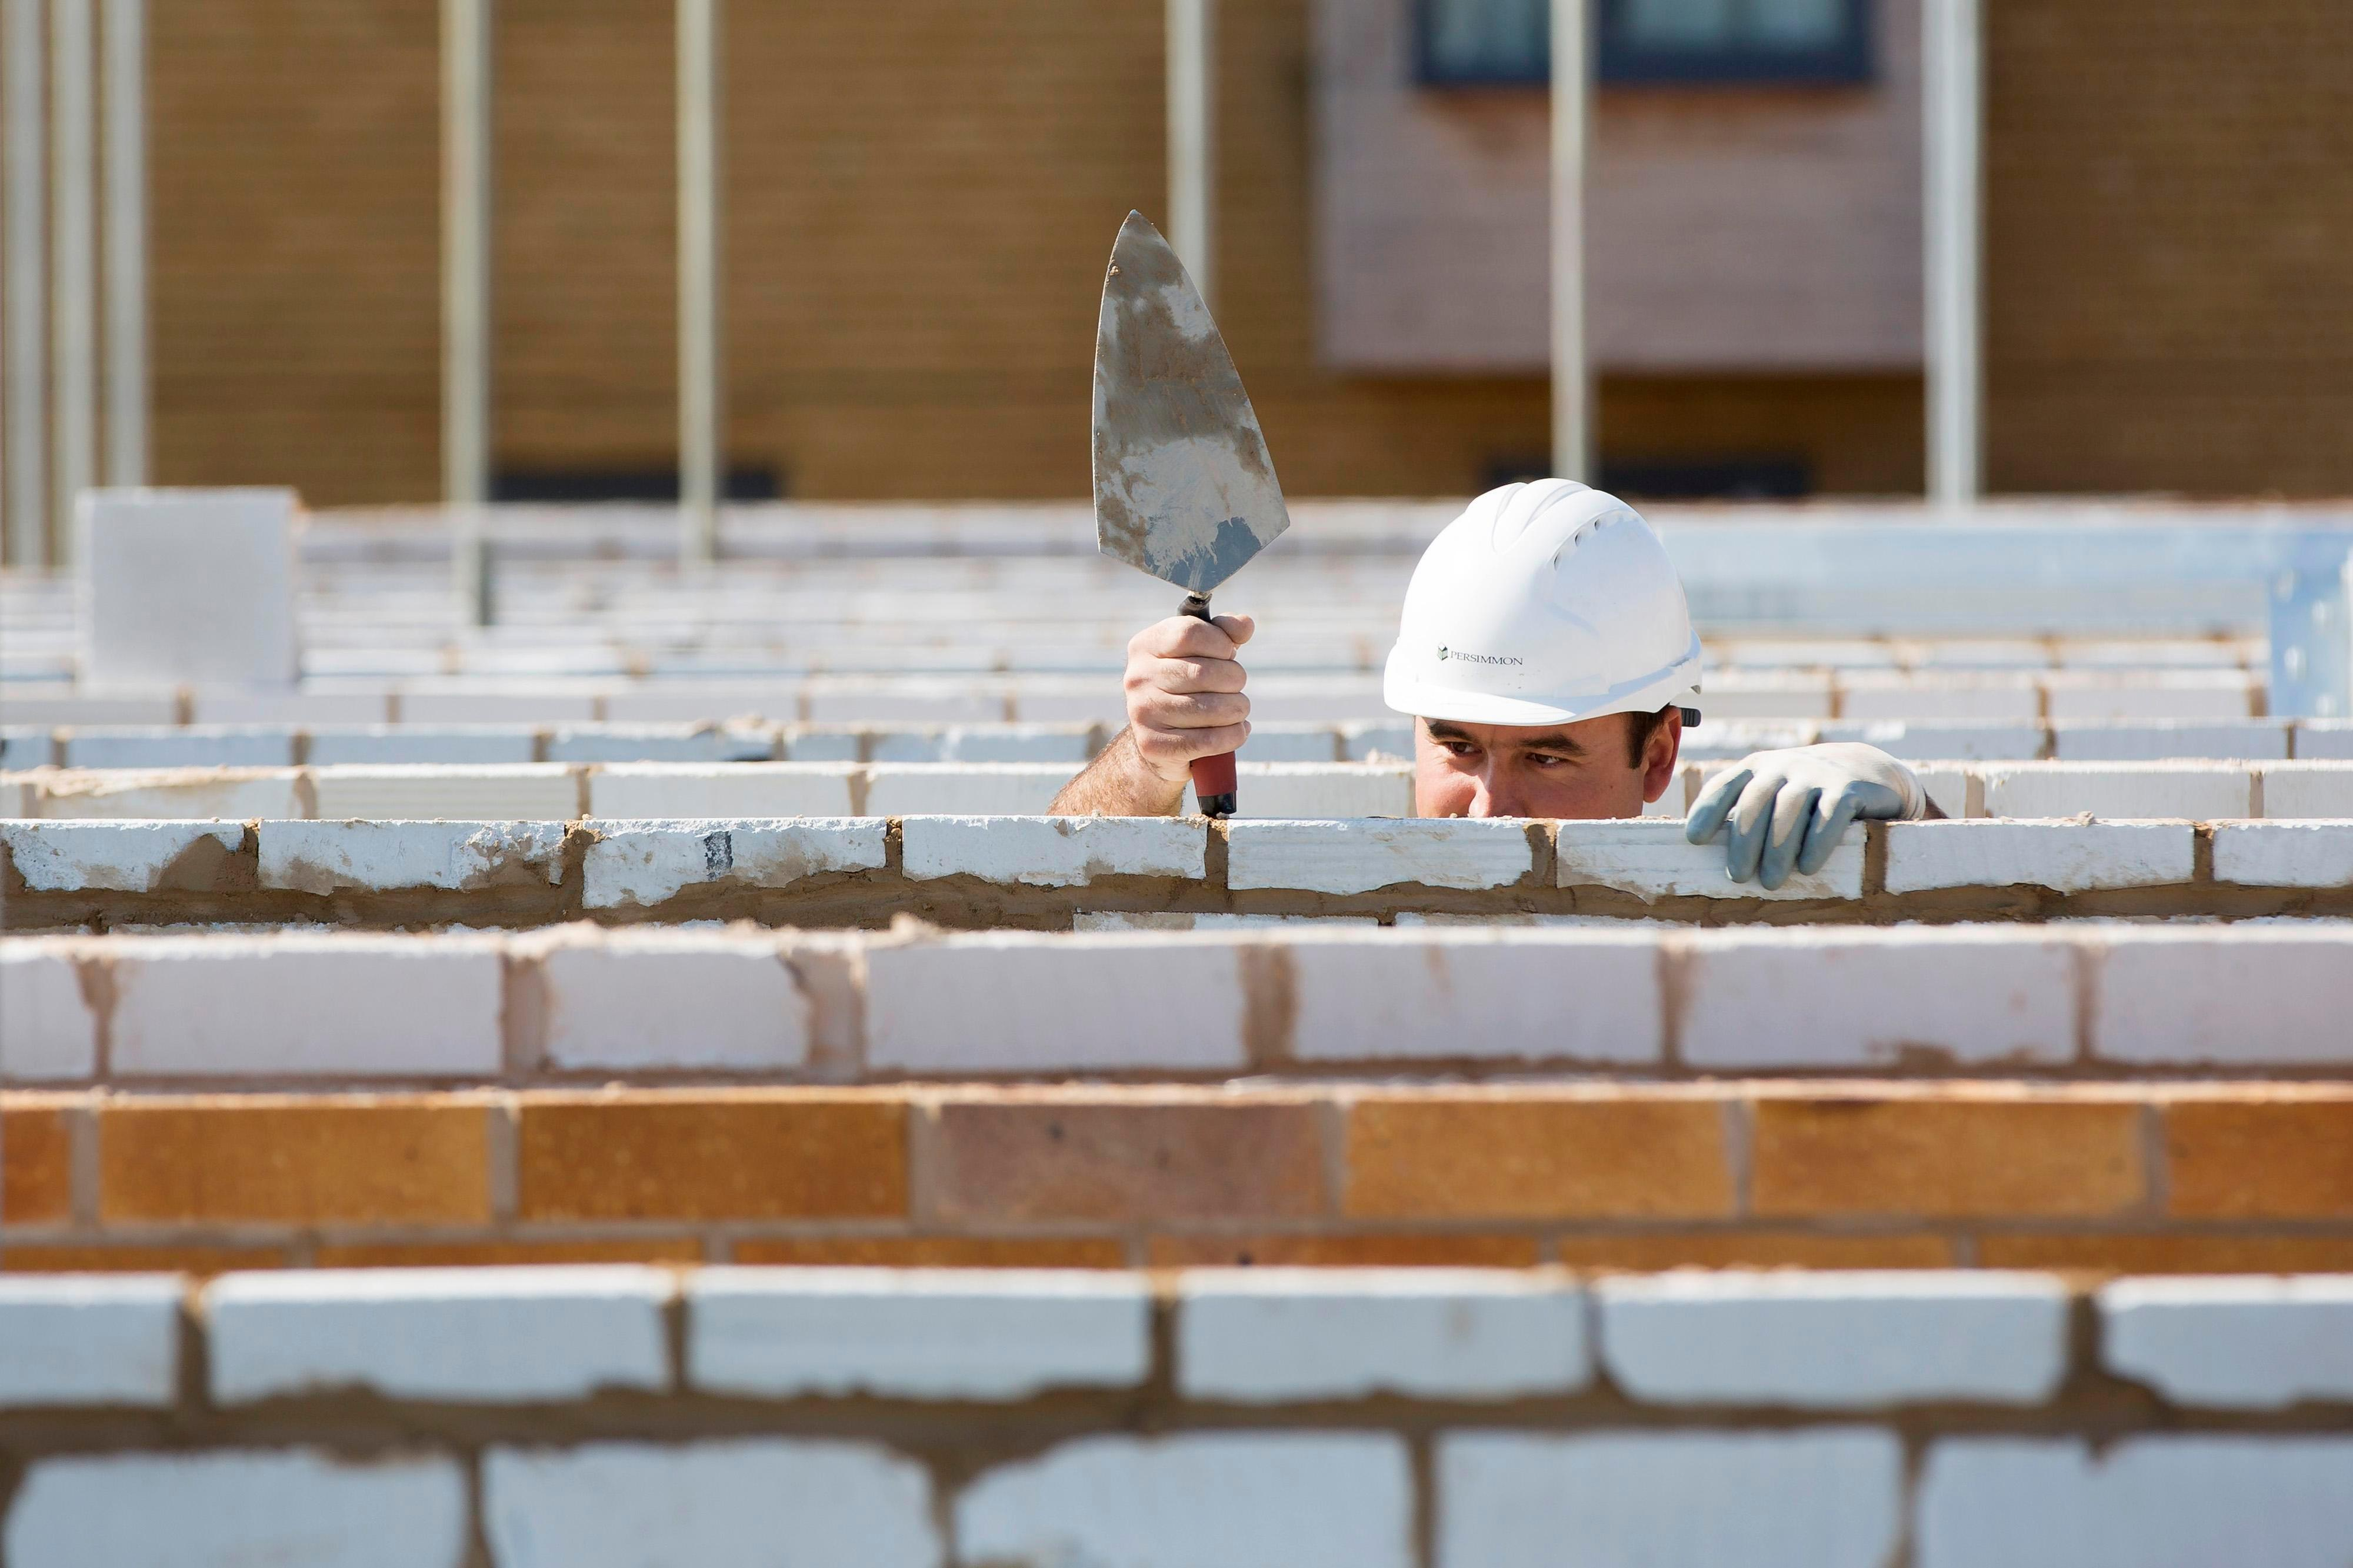 Study reveals top-earning bricklayers make £90,000 a year, with the average brickie salary at £42,034